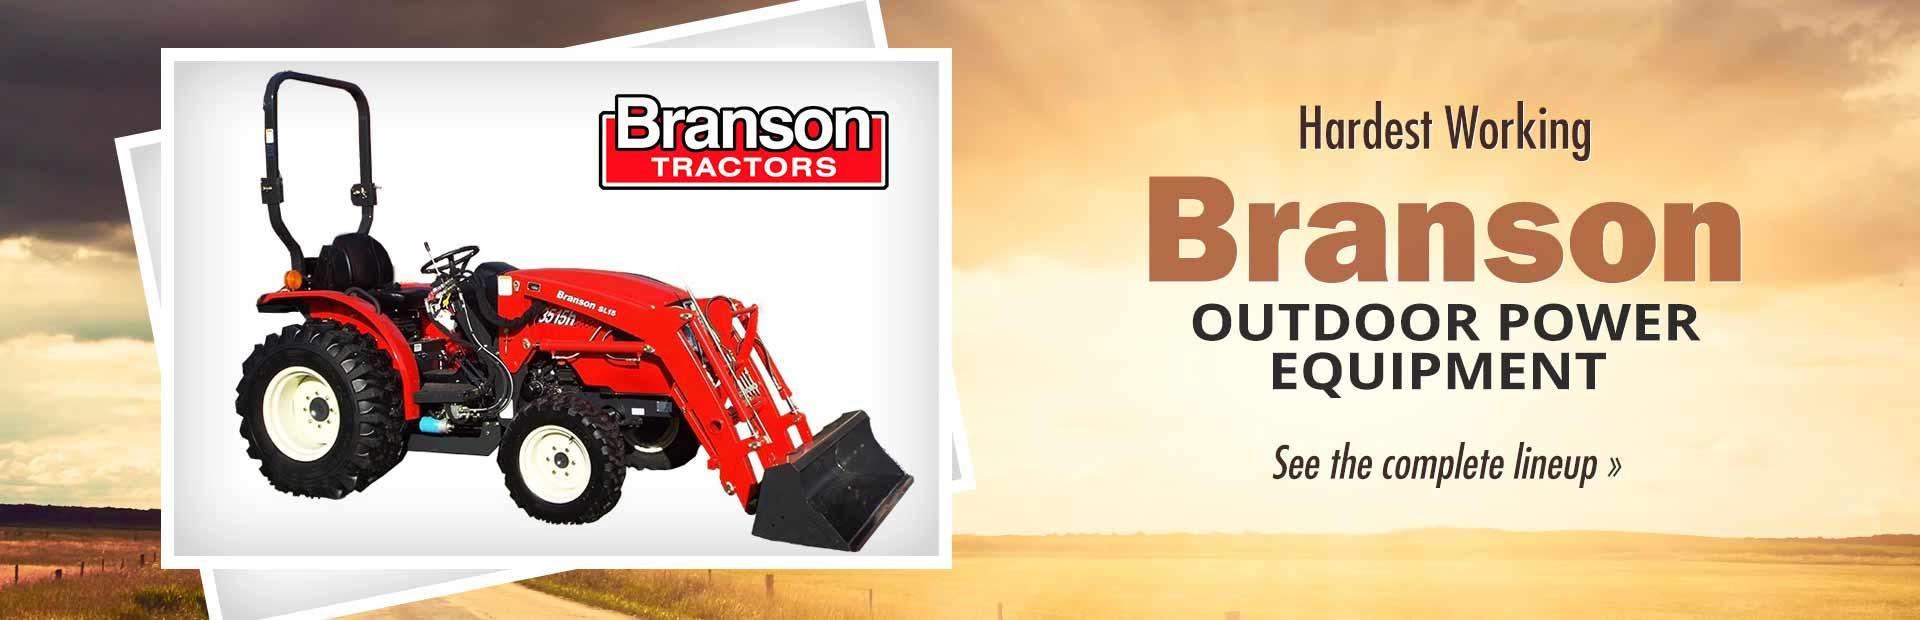 Branson Outdoor Power Equipment: Click here to view the models.